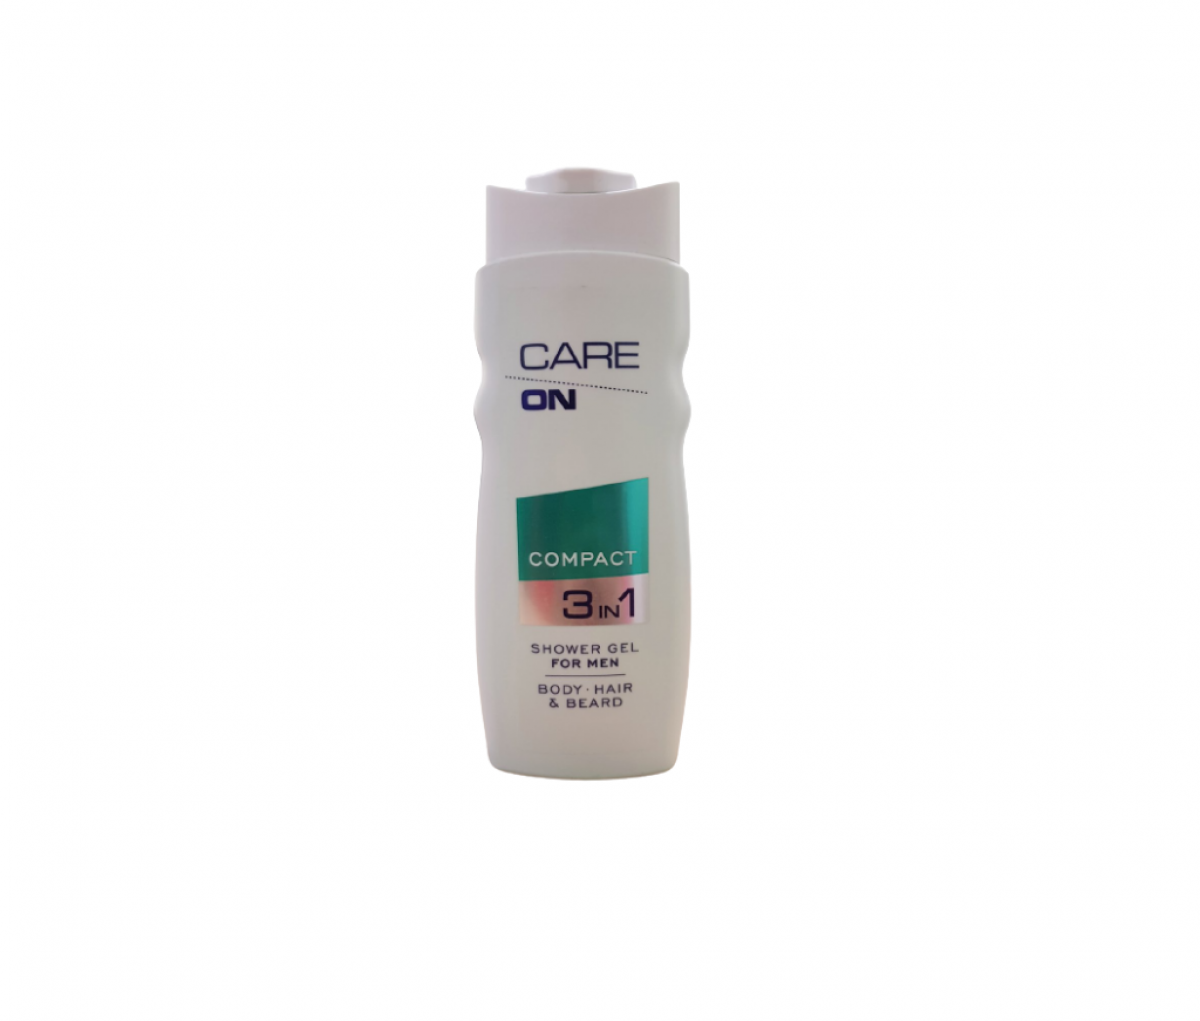 TZMO CARE ON Shower Gel 2 in 1 Compact 500ml